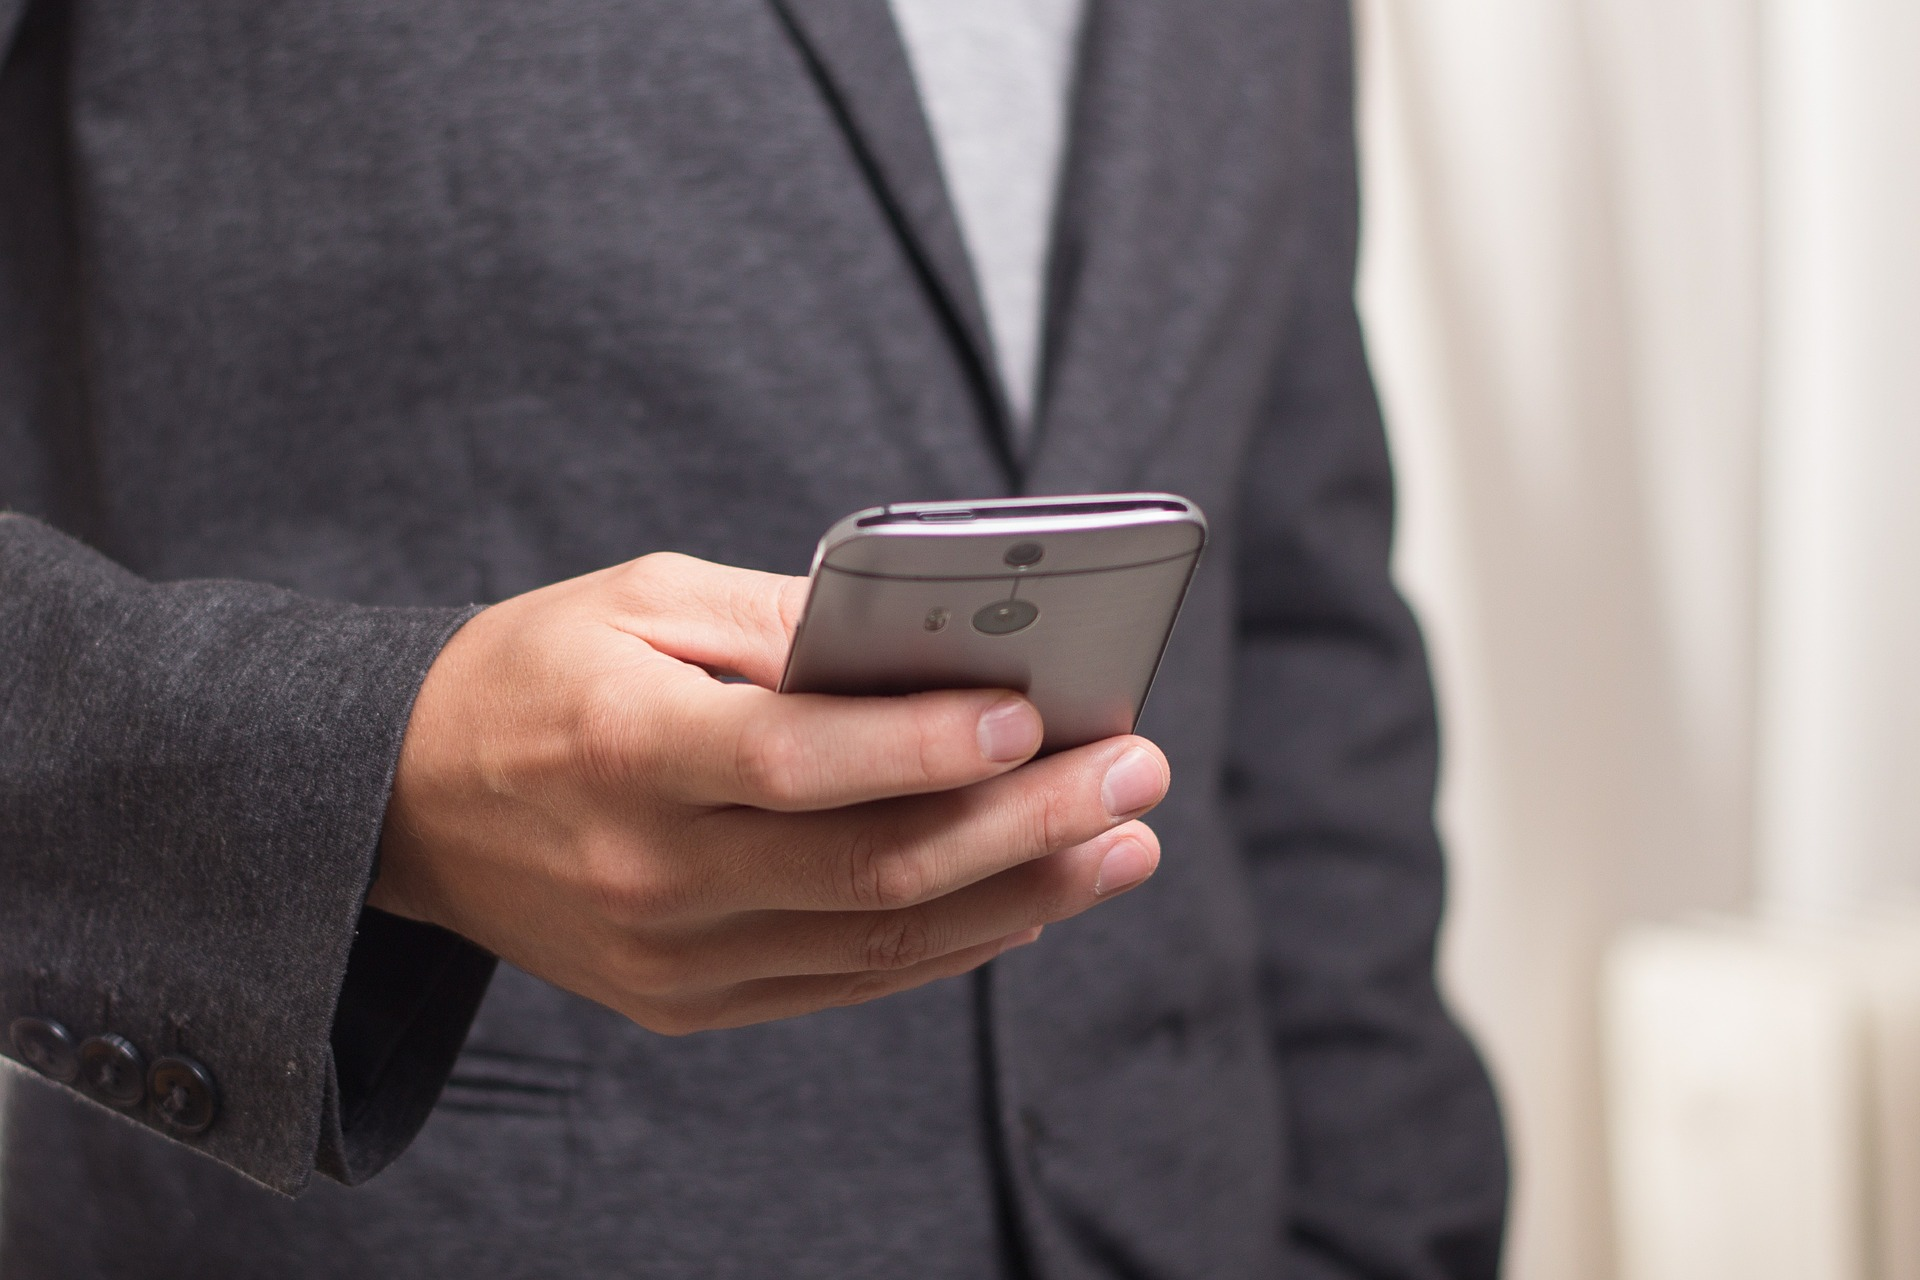 Use apps on your smartphone for a more productive commute